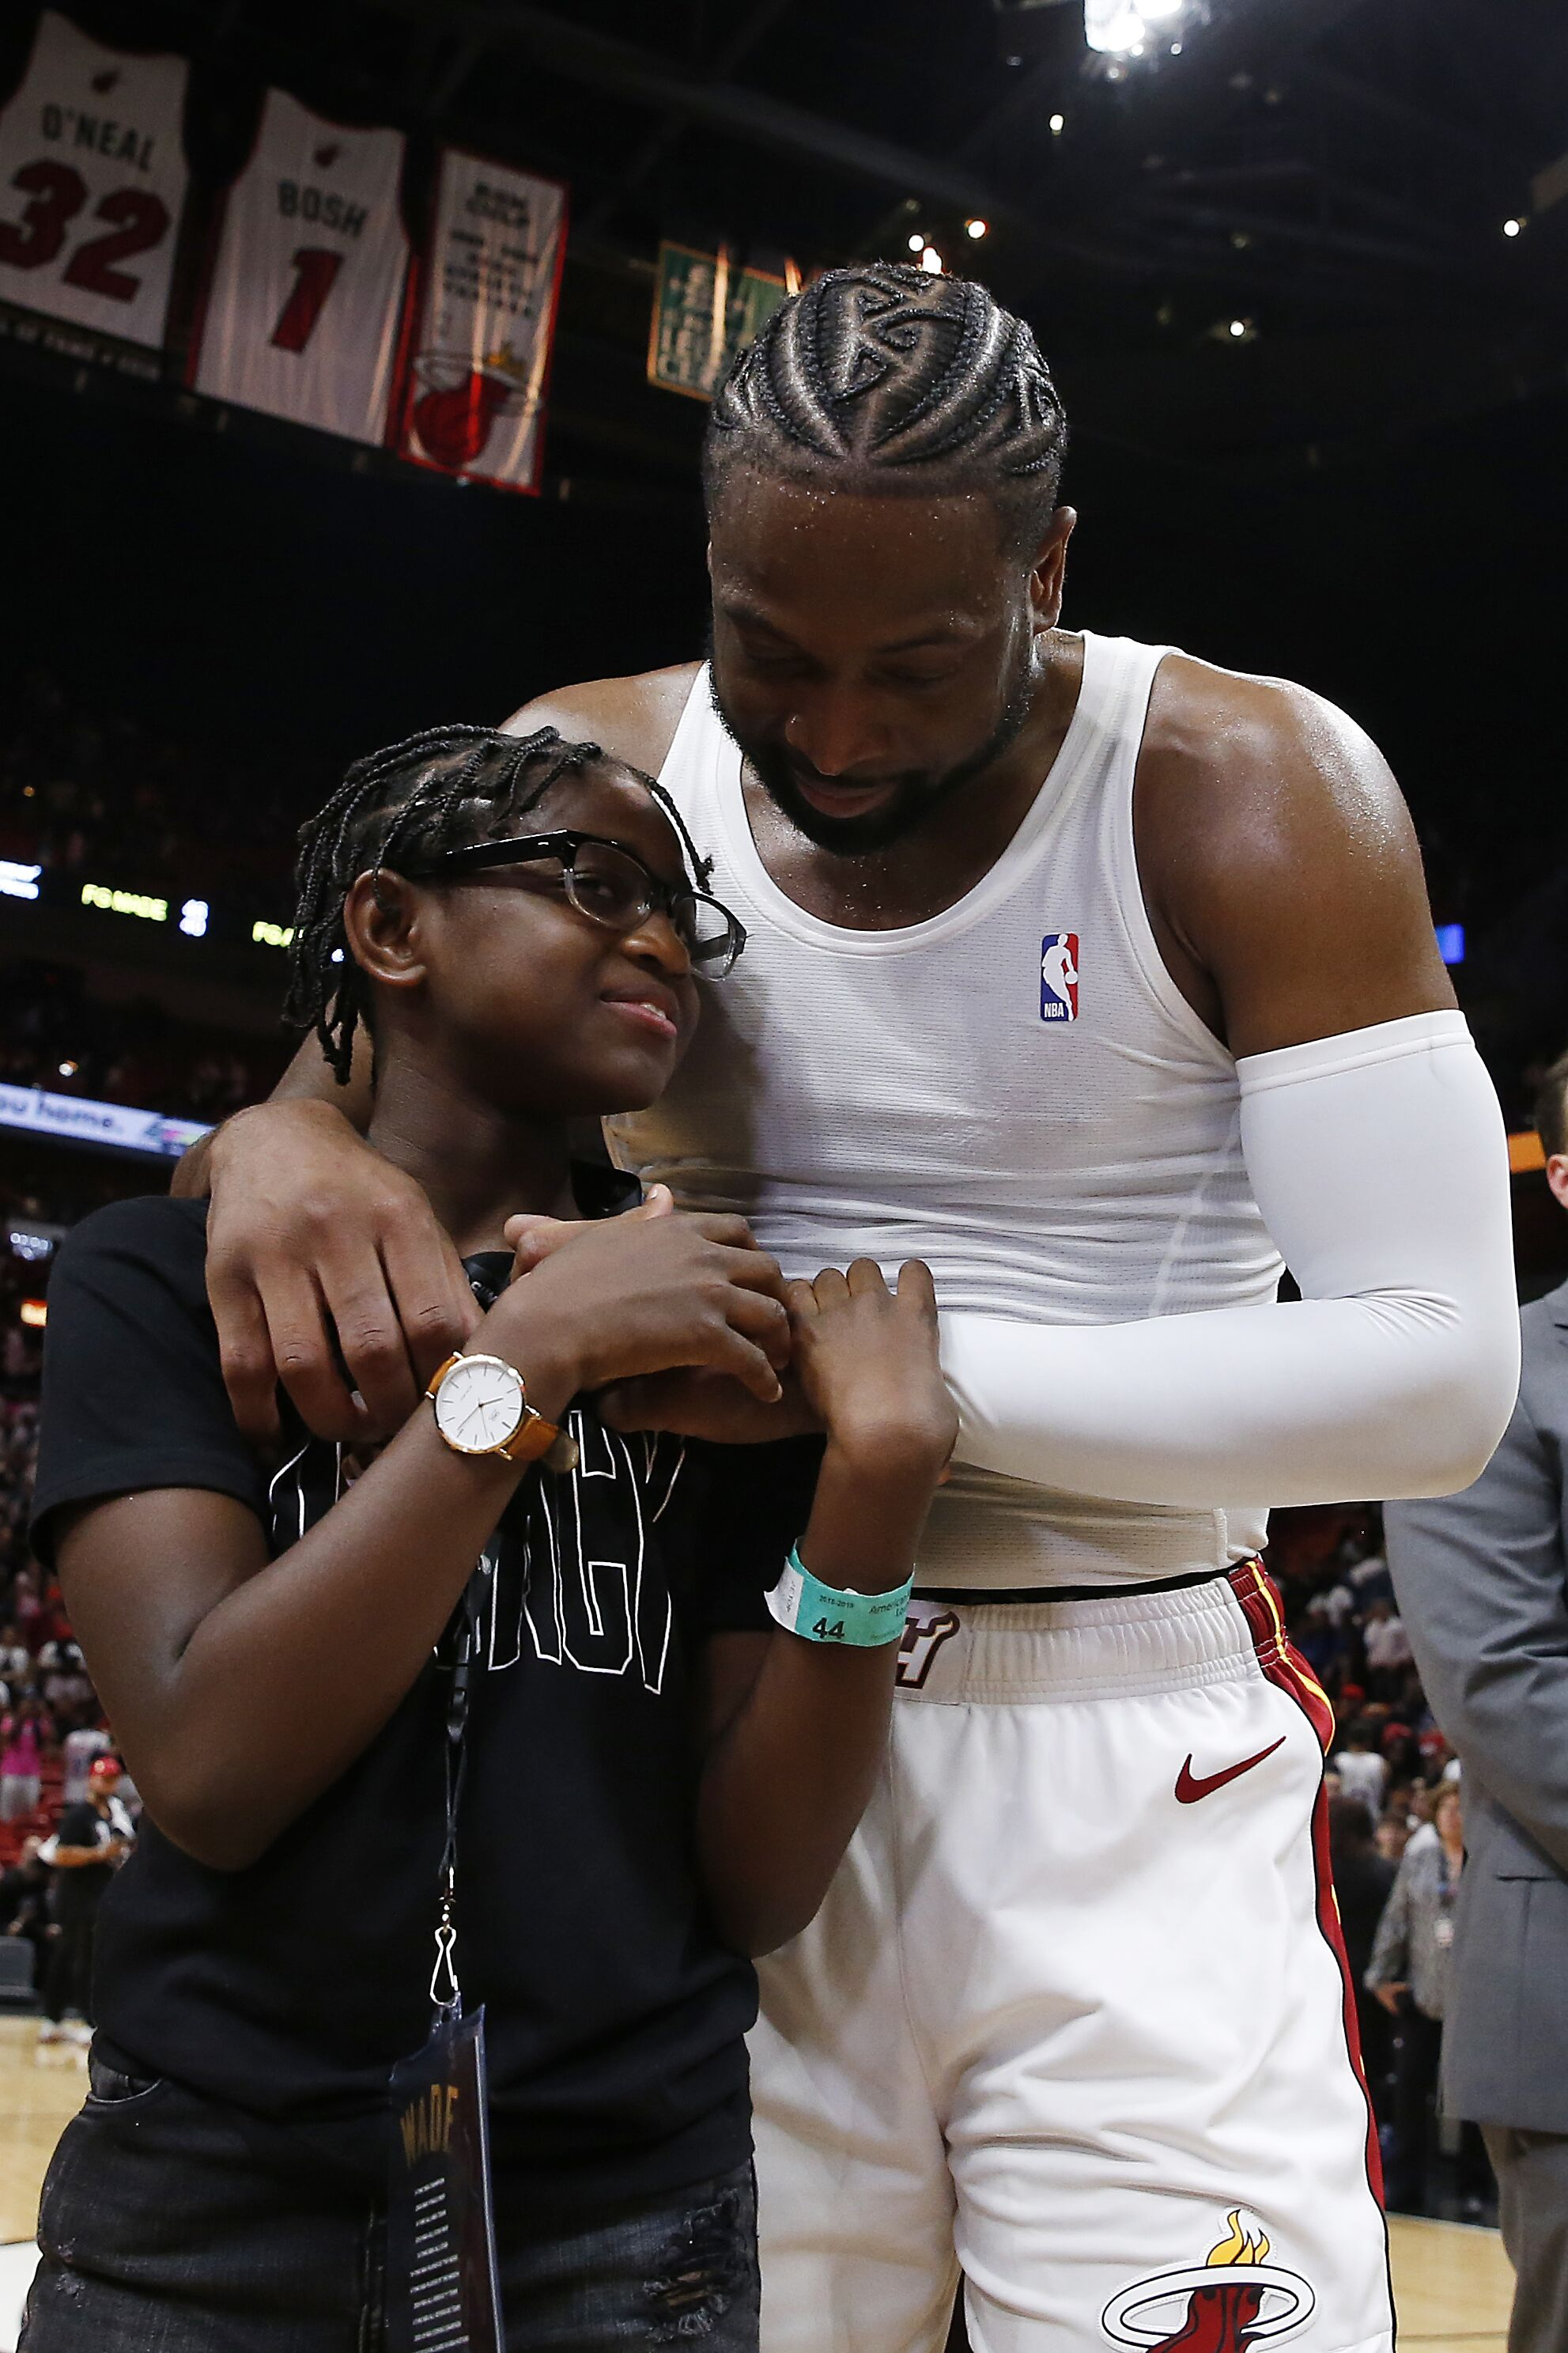 Dwyane Wade and son Zion at a Miami Heat Game | Source: Getty Images/GlobalImagesUkraine